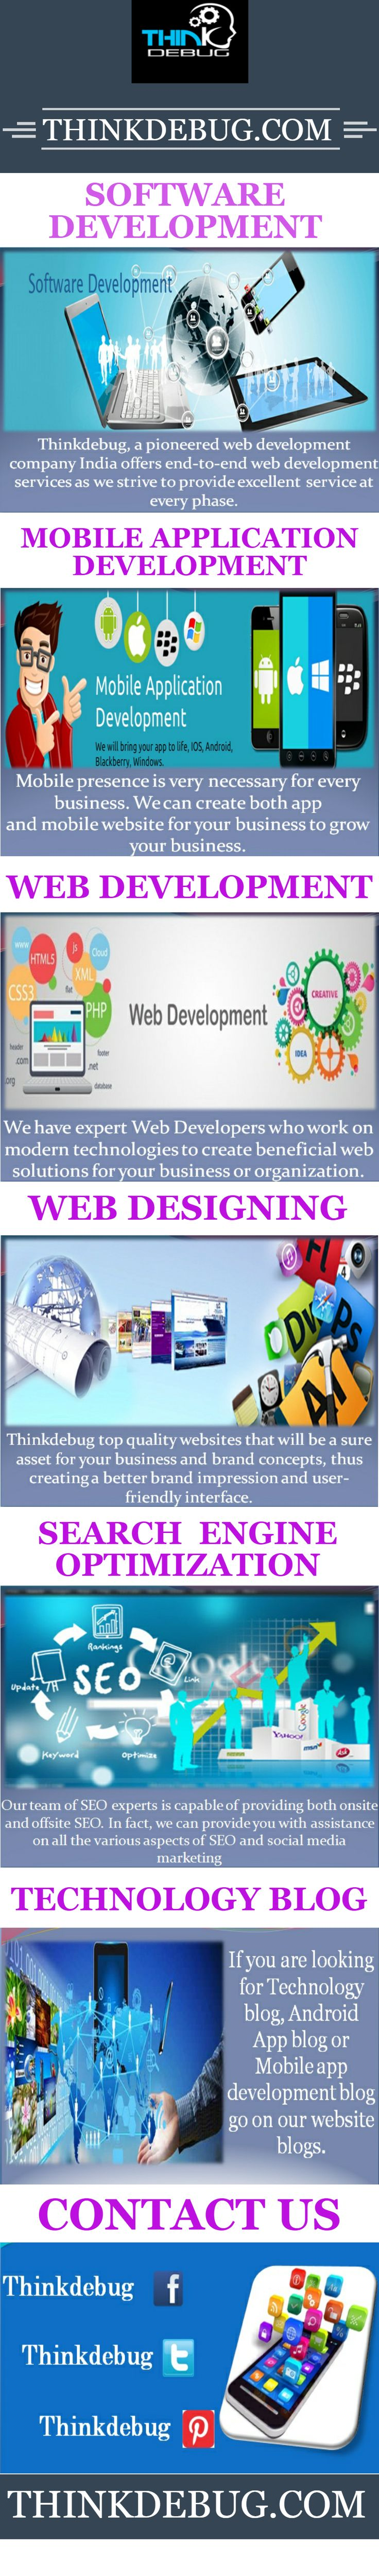 Web designing is the major service for #Thinkdebug IT Solution. We are the top #web_design company in India. #We_design the greater websites for our customers. This web design can help business owners for improving their business deals. By providing the rich web designs and good graphic #designs Thinkdebug IT Solution satisfy our customers and end users. We have experts and highly experienced professional web designers and developers,  More visit: http://thinkdebug.com